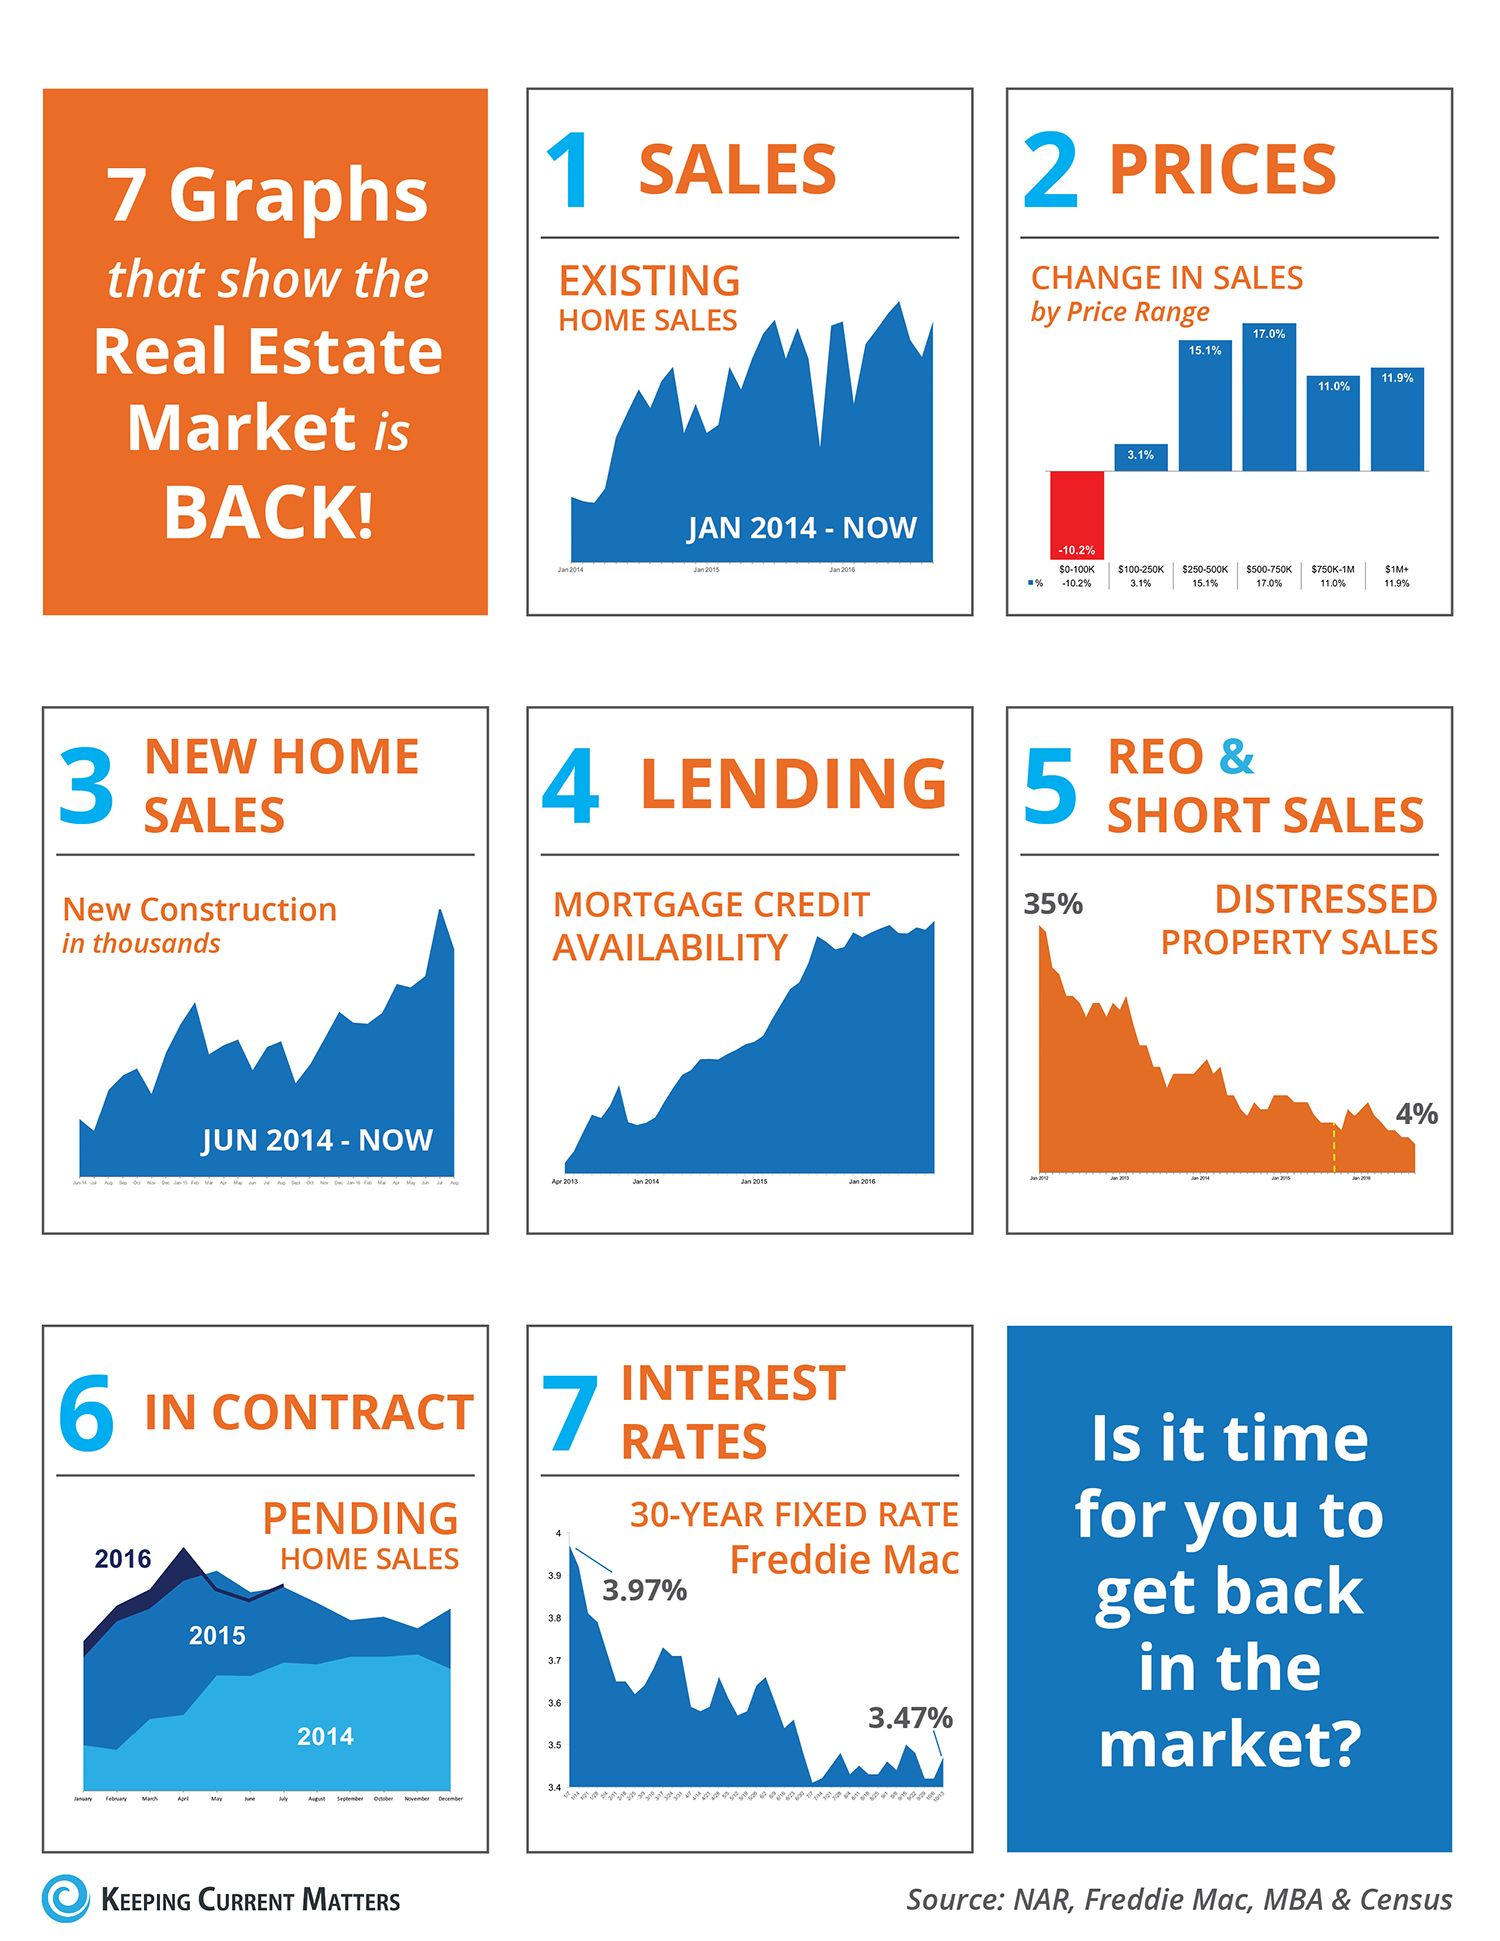 7 Graphs That Show the Real Estate Market is Back! [INFOGRAPHIC